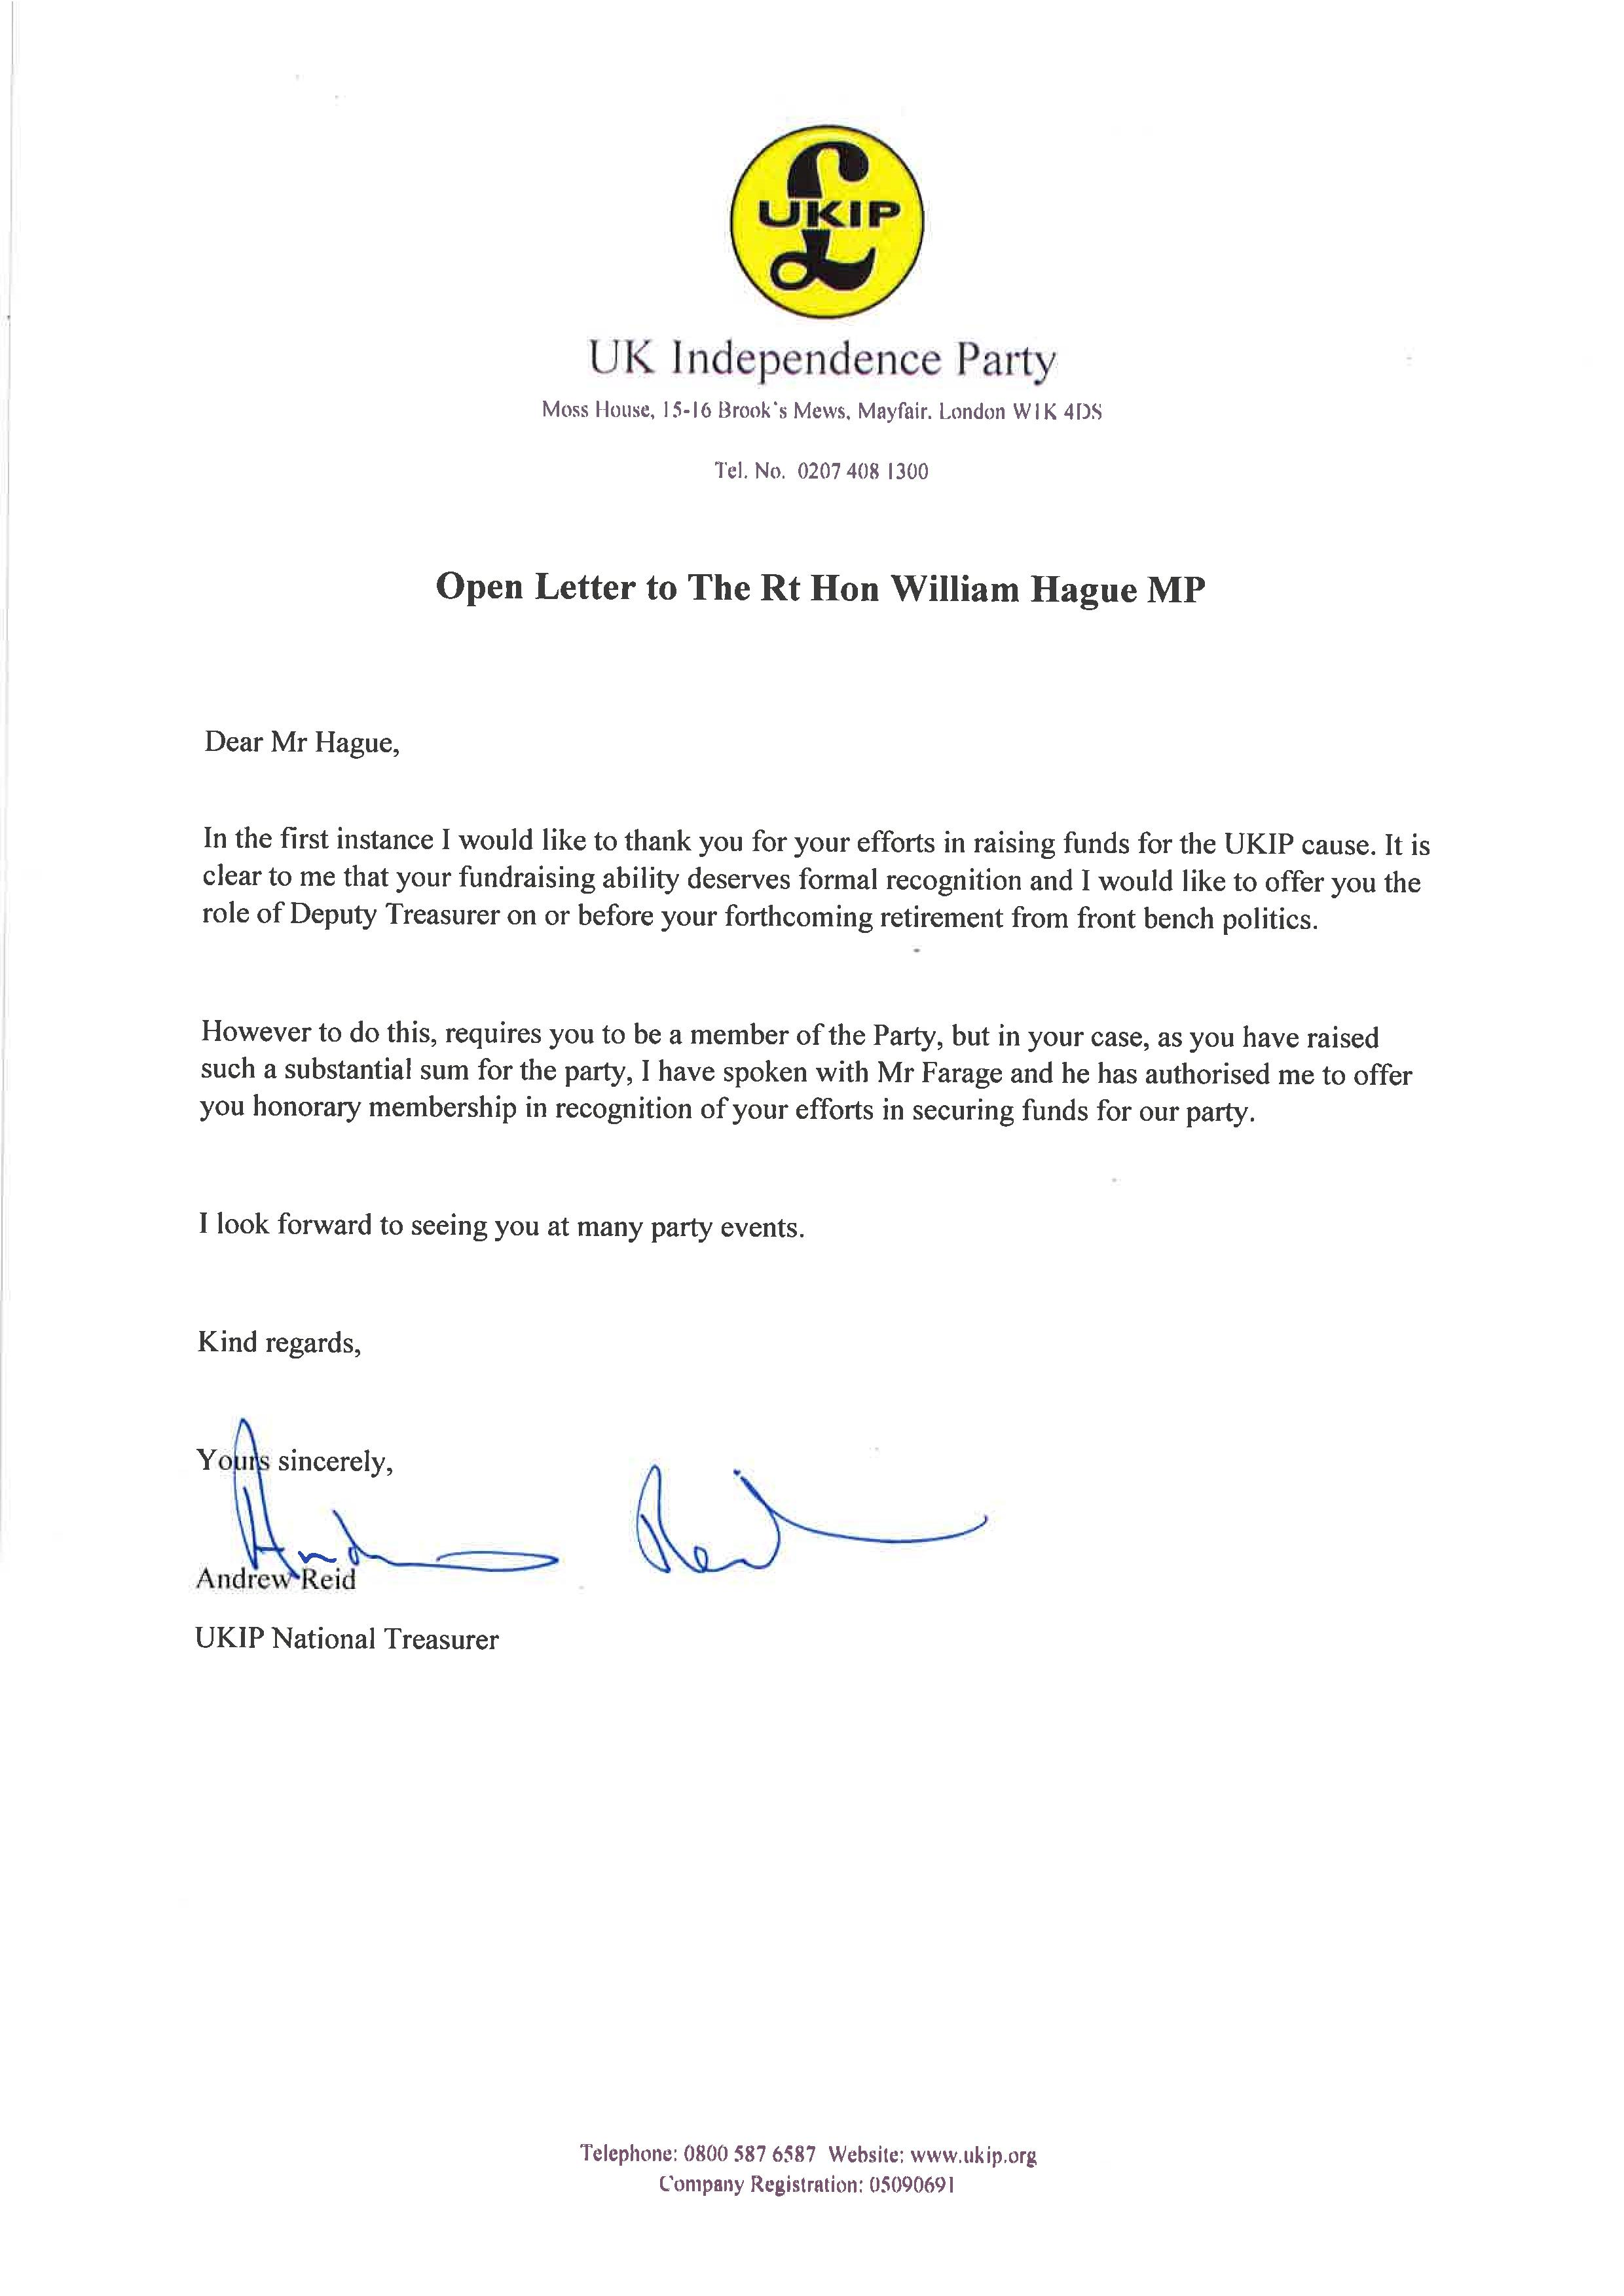 Open_Letter_to_The_Rt_Hon_William_Hague_MP-page-001.jpg